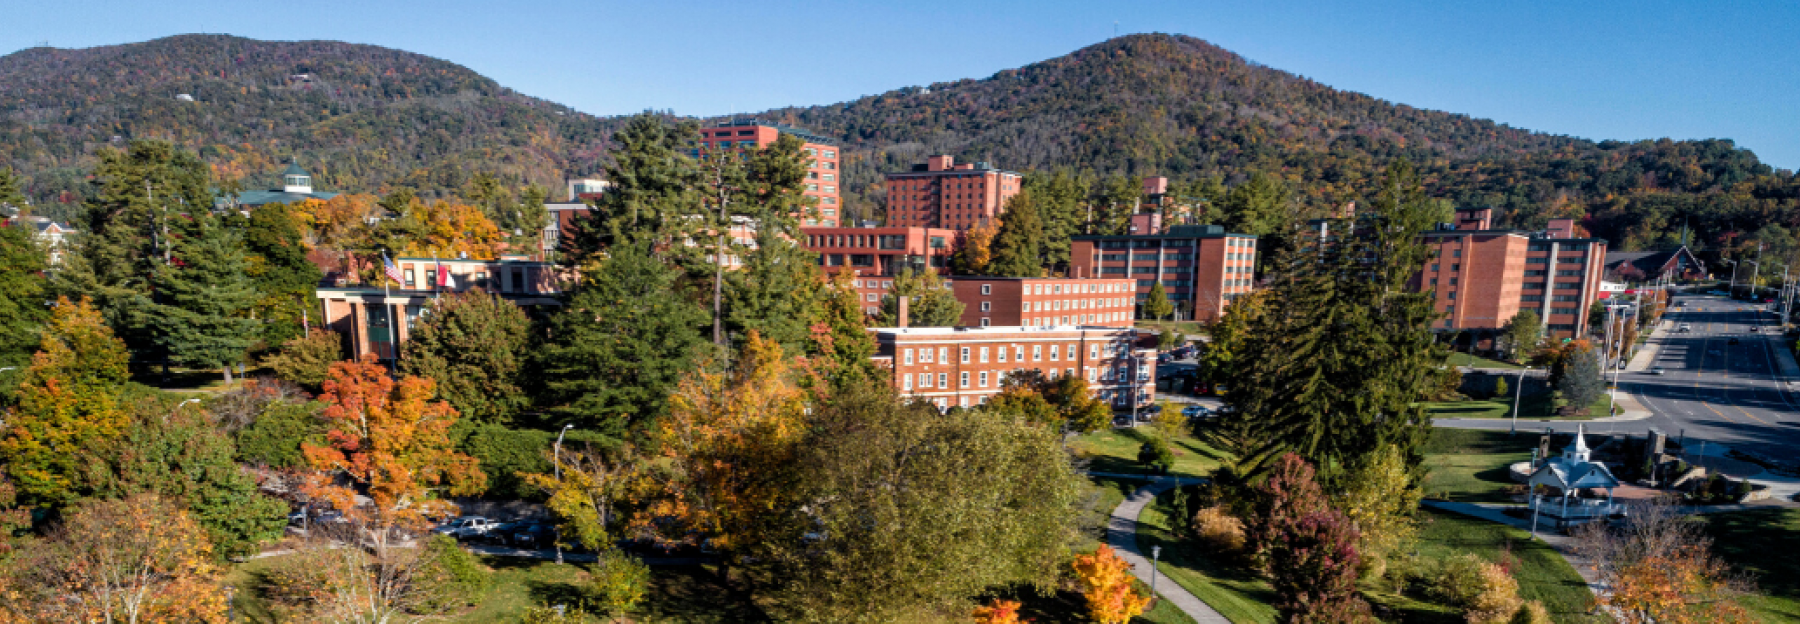 campus panoramic picture during the fall